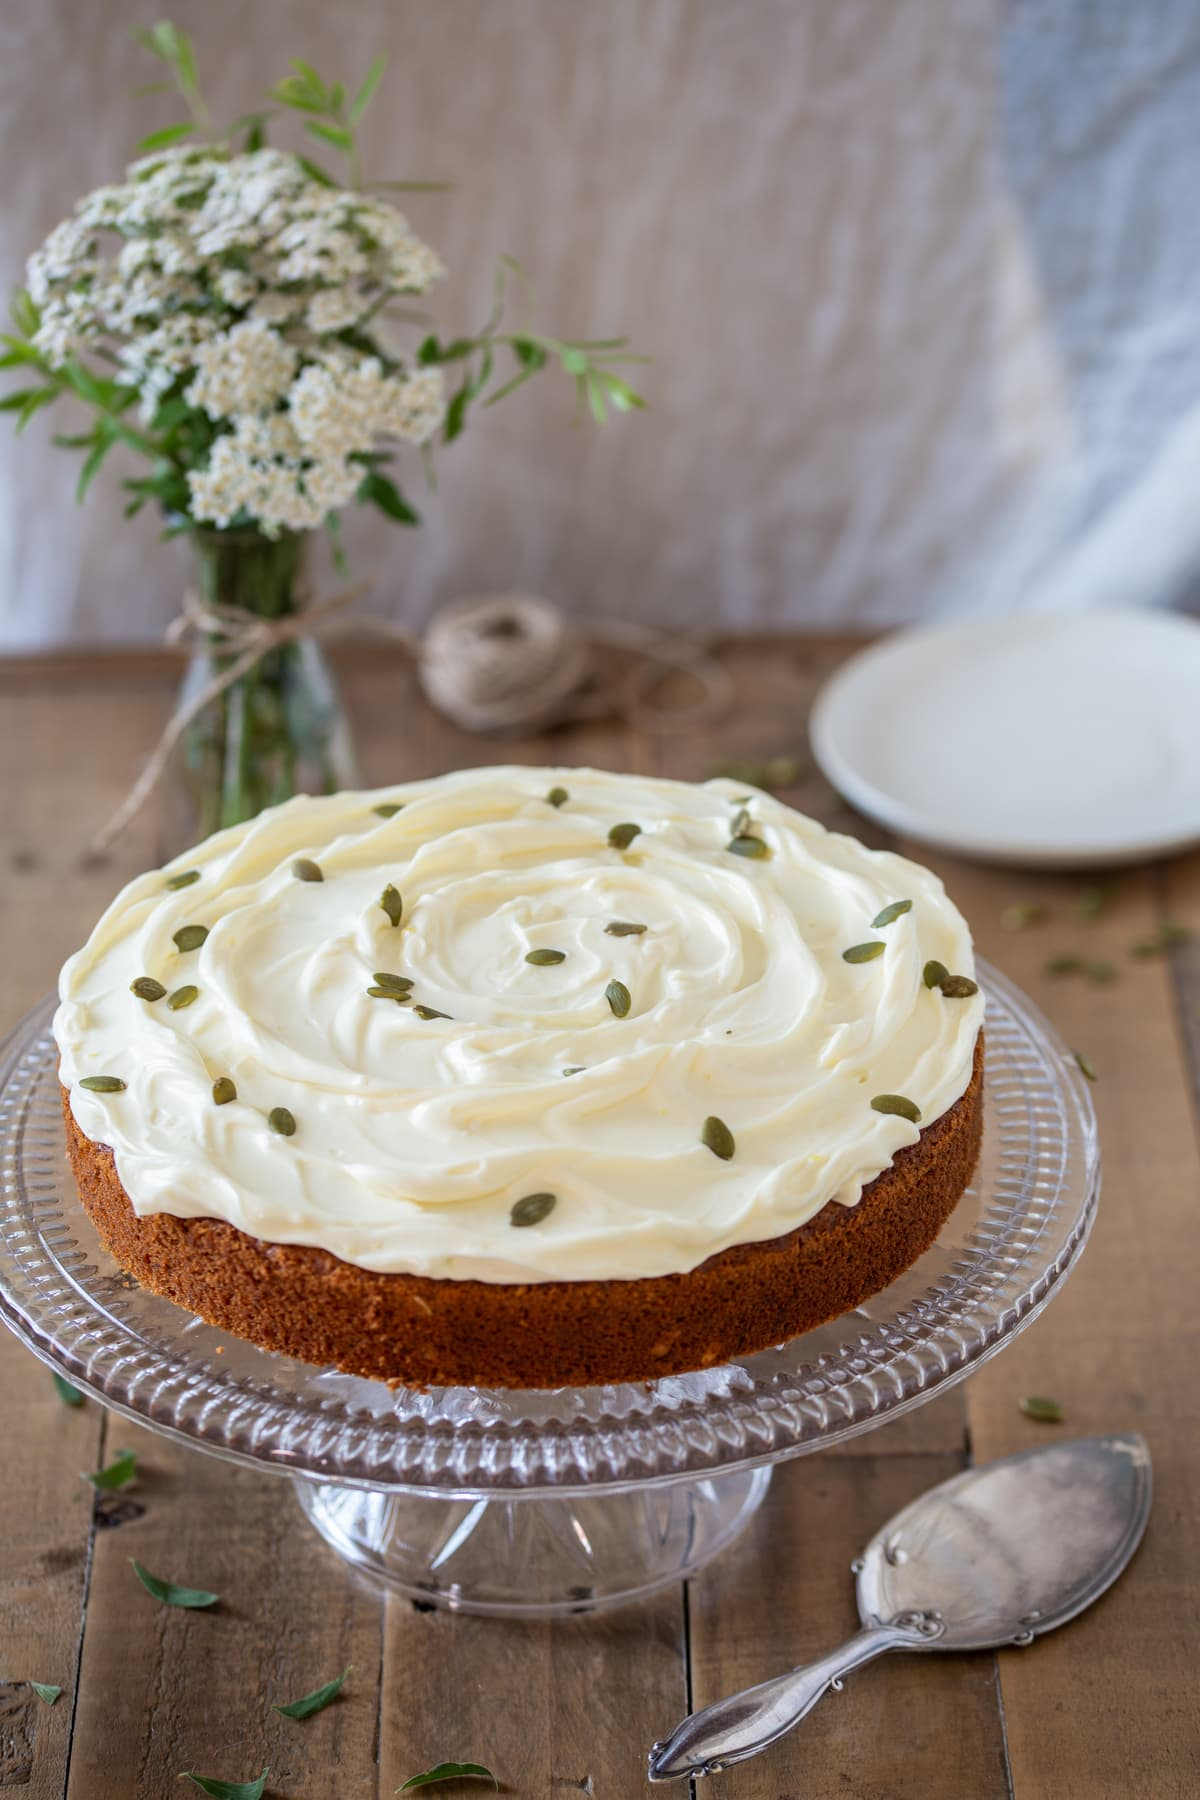 Carrot cake with pumpkin seeds over the frosting.